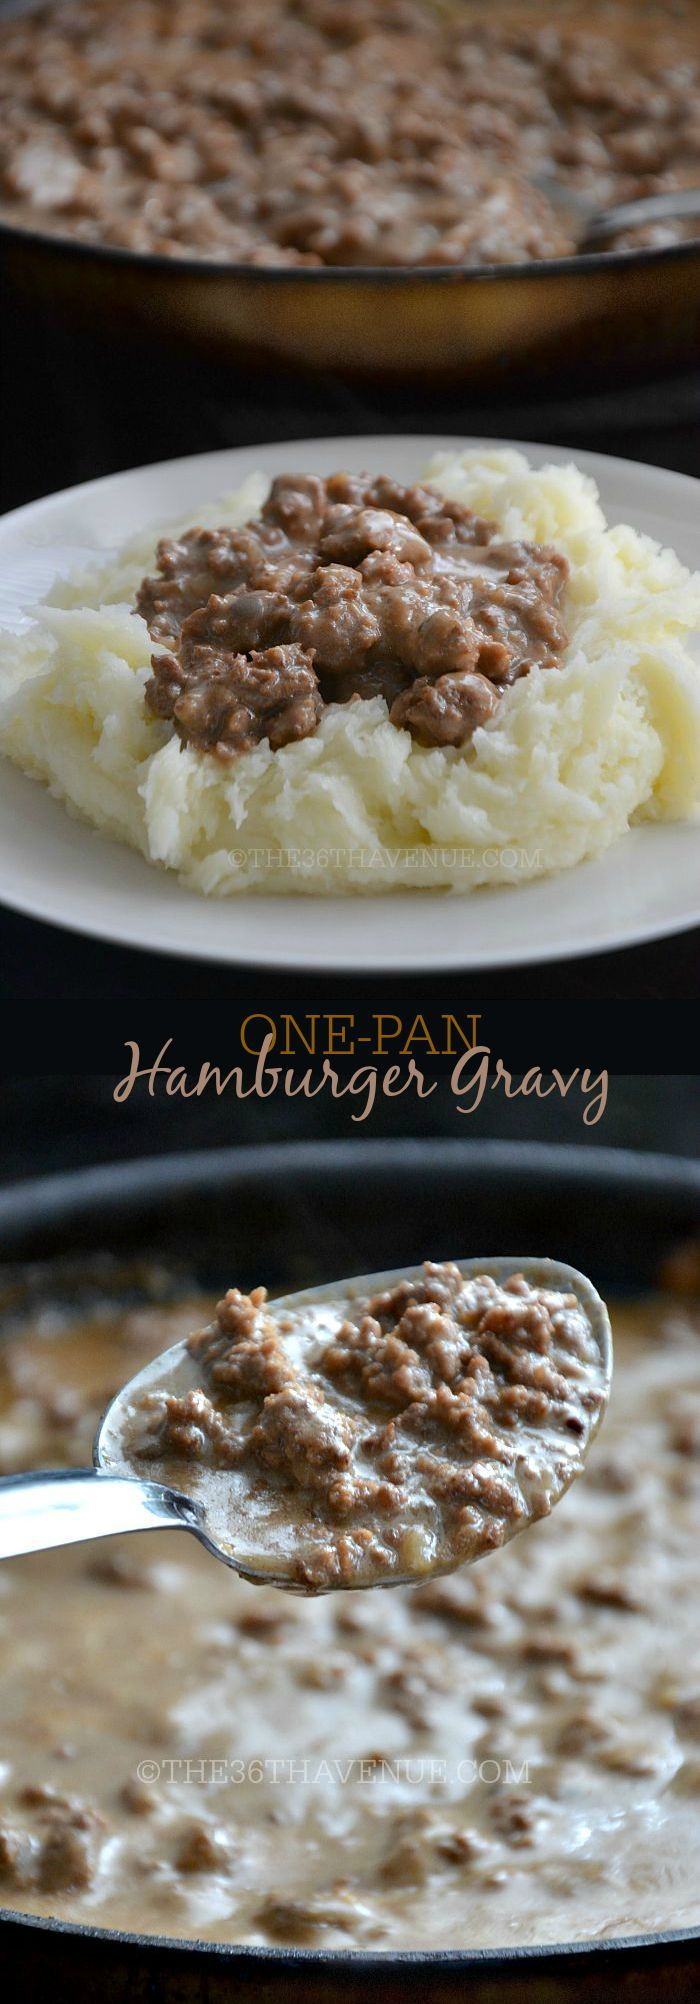 Recipe - One Pan Hamburger Gravy Recipe by the36thavenue.com Main dish, side dish, hamburger: